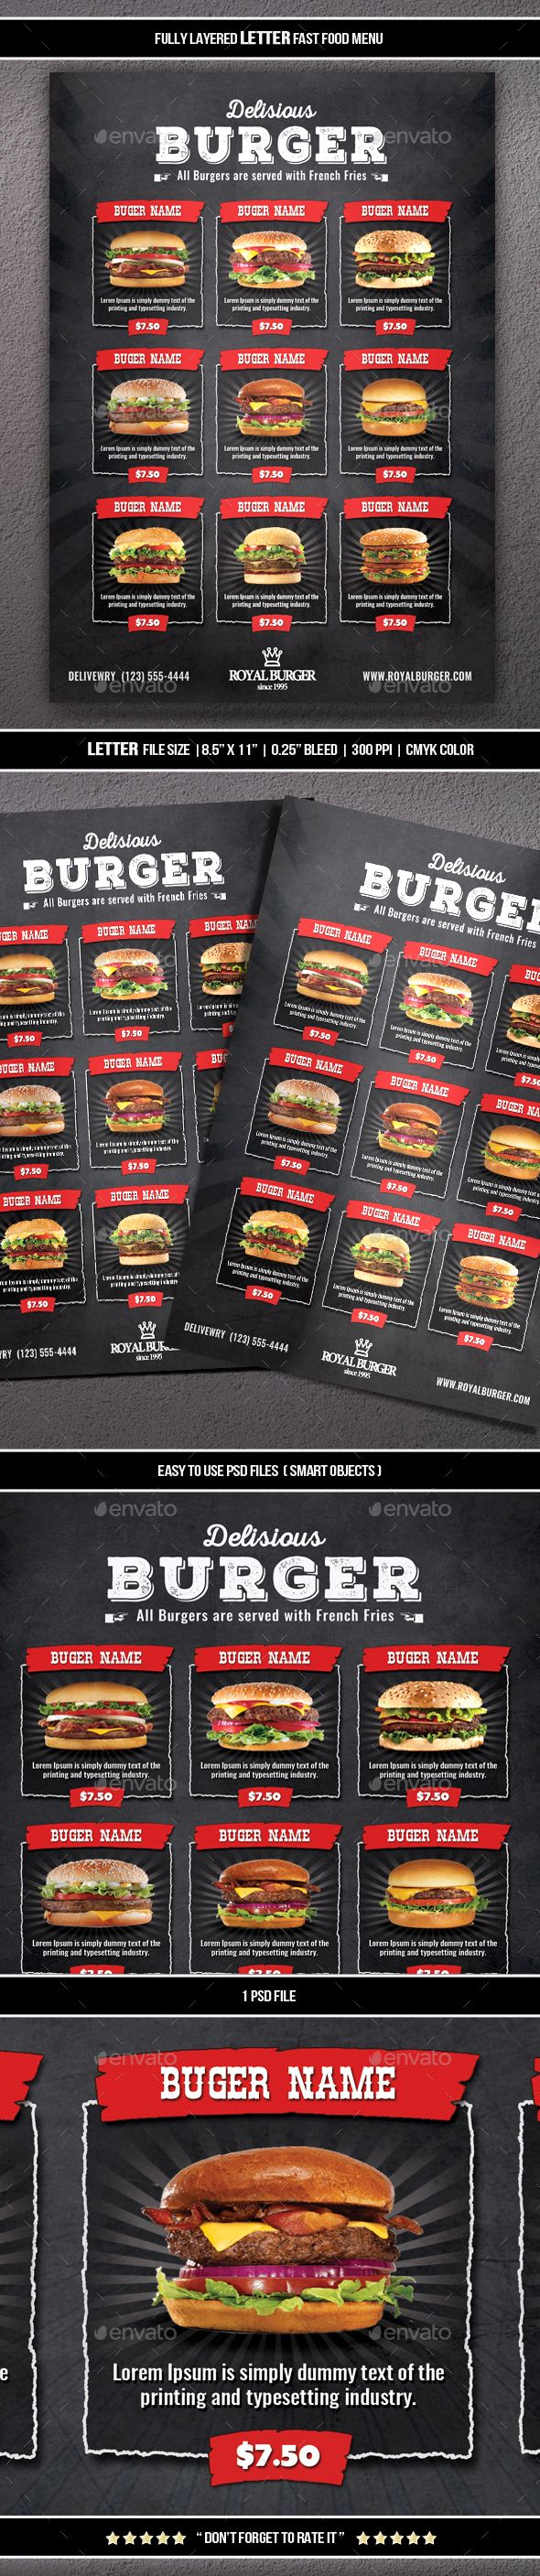 """Fast Food Menu """"Fast Food Menu (Letter)"""" Suitable for any restaurant and fast food business. Easy to move or change if required. Files are structured in folders and well named for easy editing. Change text, edit colors and move items. Easy to change images. (smart objects)  Contents: – 1 Labeled .psd file 